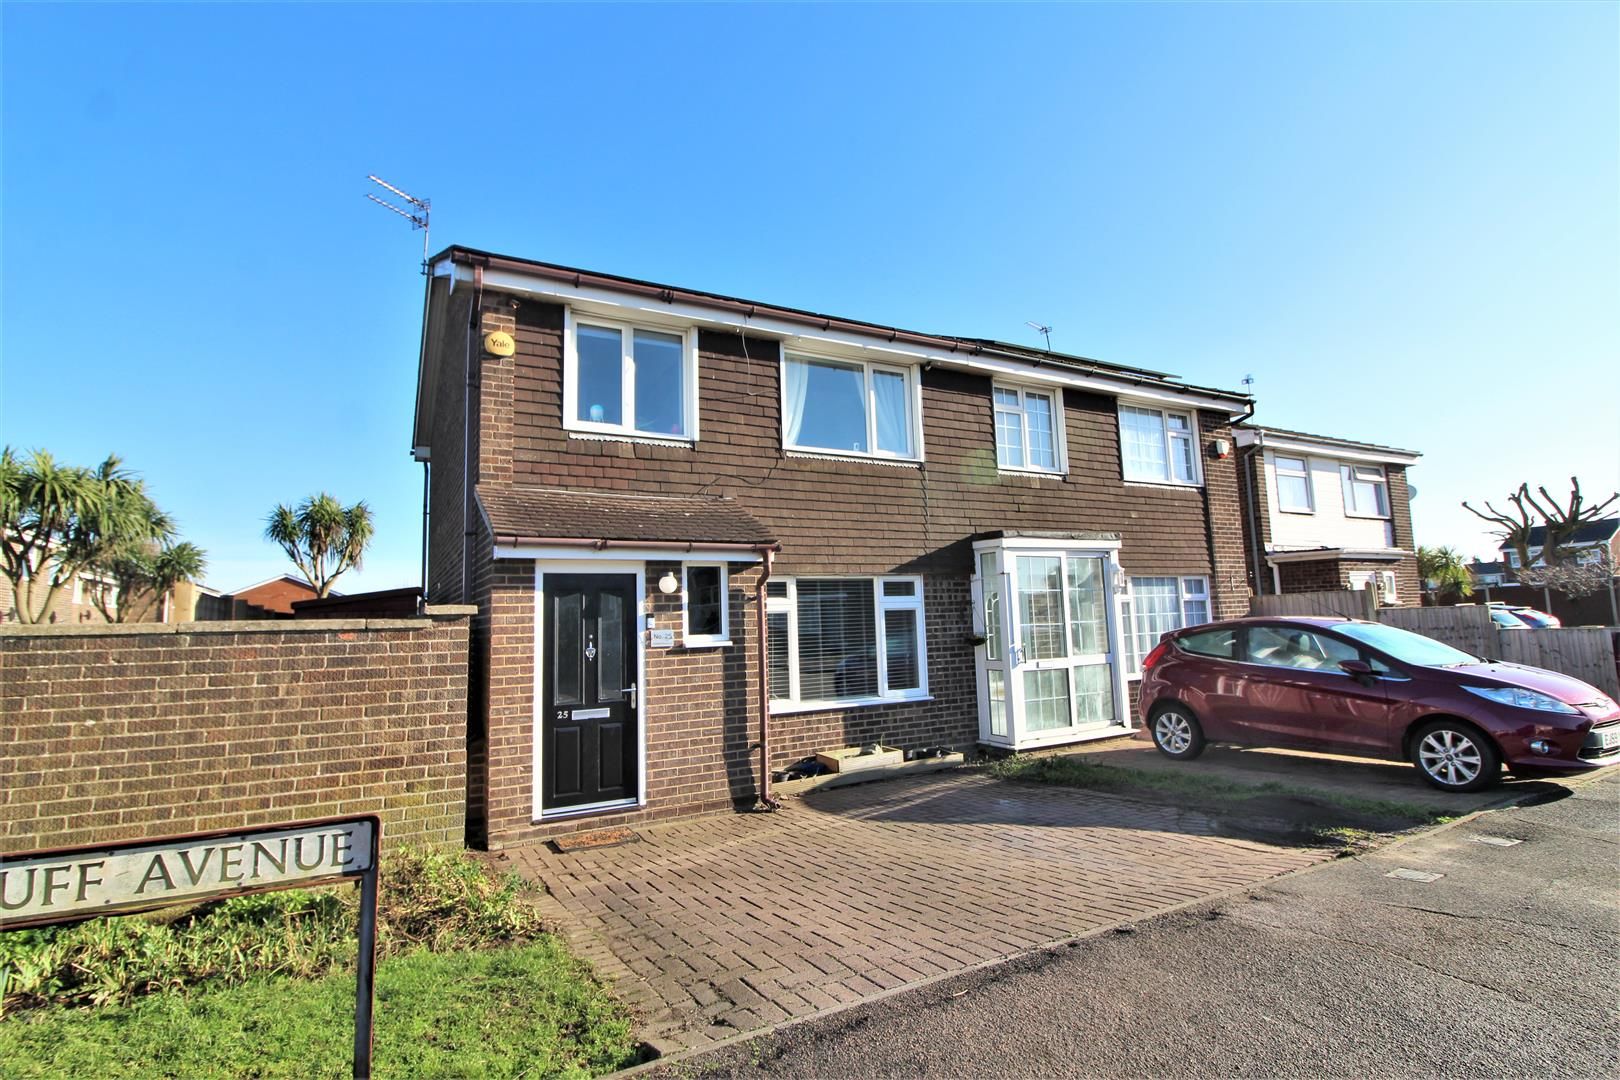 Peter Bruff Avenue, Clacton-On-Sea, Essex, CO16 8UE